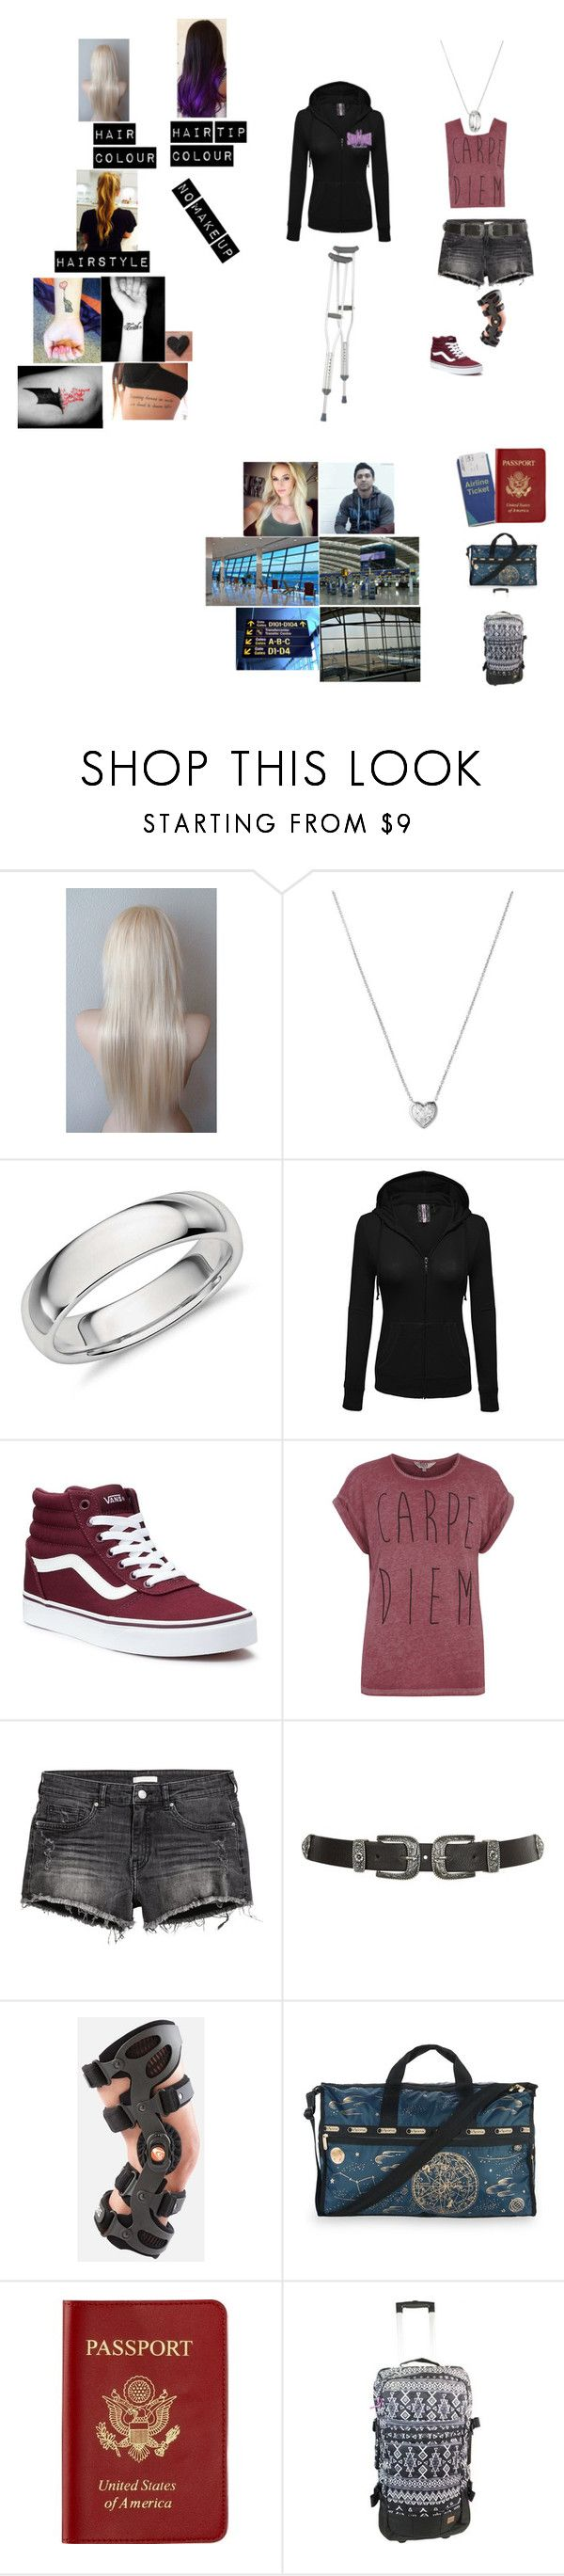 """""""Brianna~ Flying Back Home To California with TJ (2012)"""" by wwetnagirl ❤ liked on Polyvore featuring Links of London, Vans, Dorothy Perkins, New Look, LeSportsac, Passport and Billabong"""